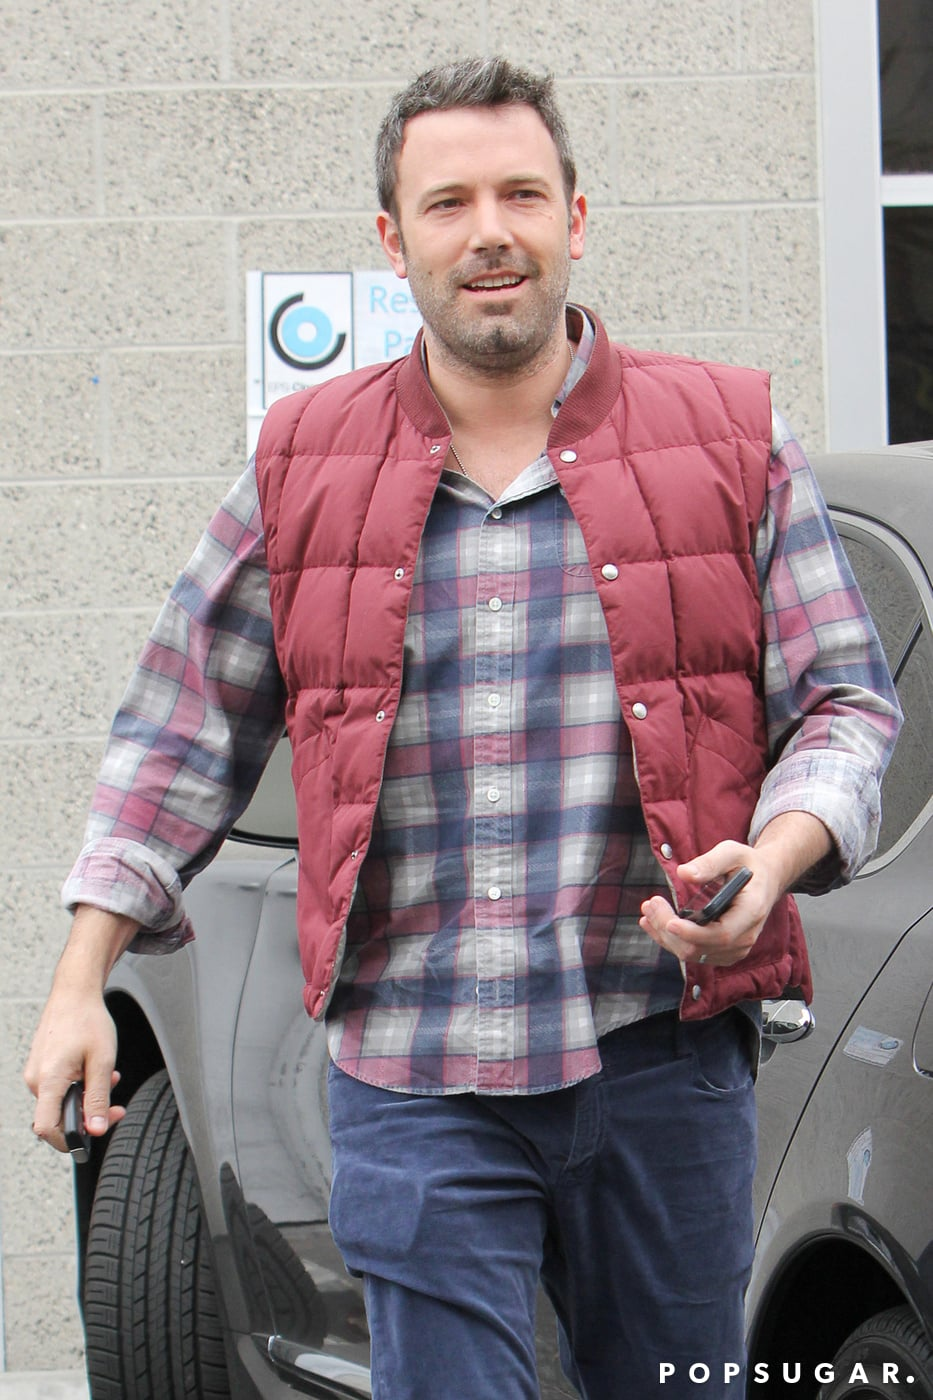 Ben Affleck Smiles While Scraping By on $1.50 a Day